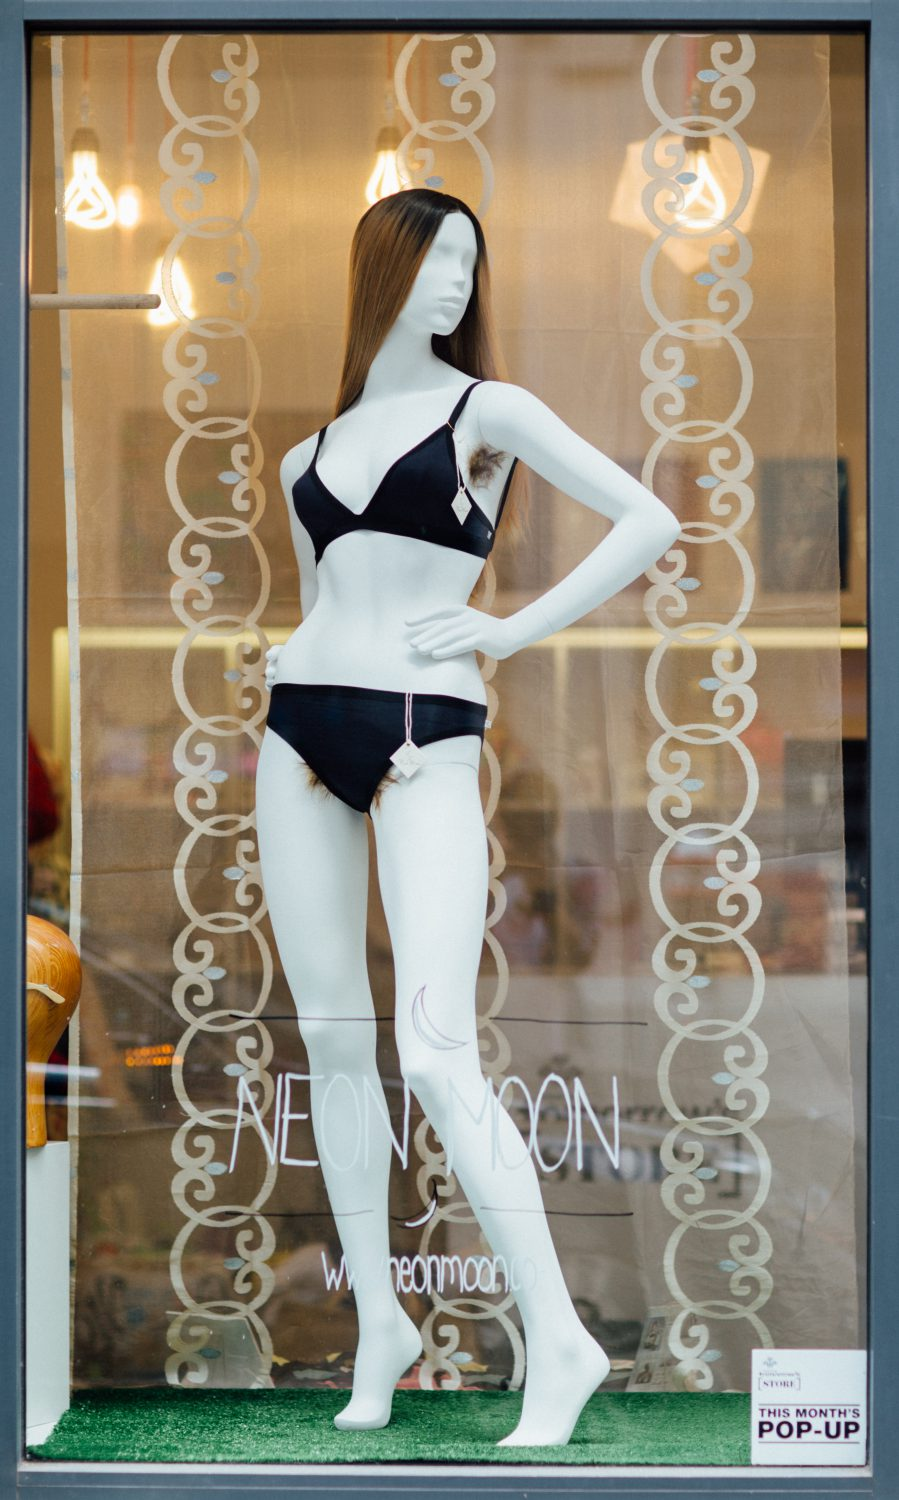 Neon Moon Feminist Lingerie Pop Up Body Positive Hairy Mannequin 1